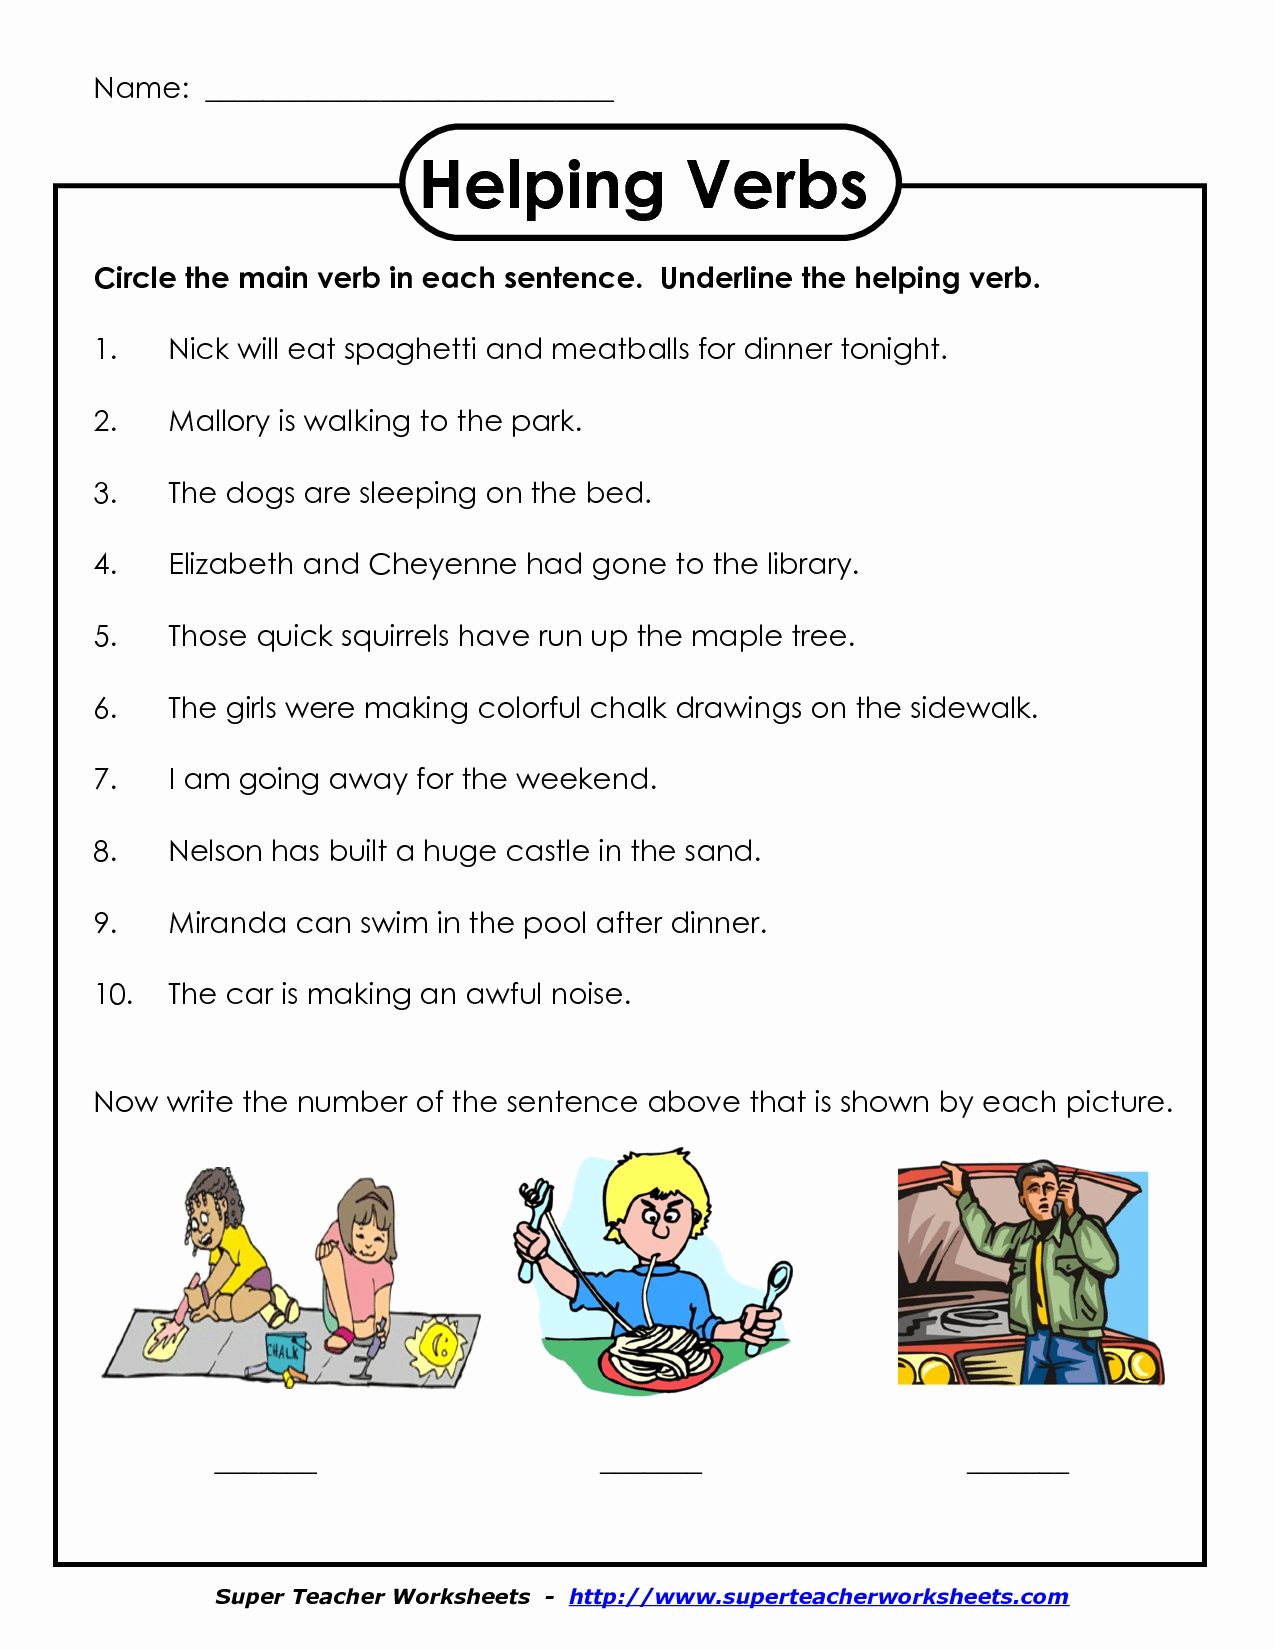 Verbs Worksheets First Grade Best Of Helping Verb Worksheet First Grade Worksheets Drawing